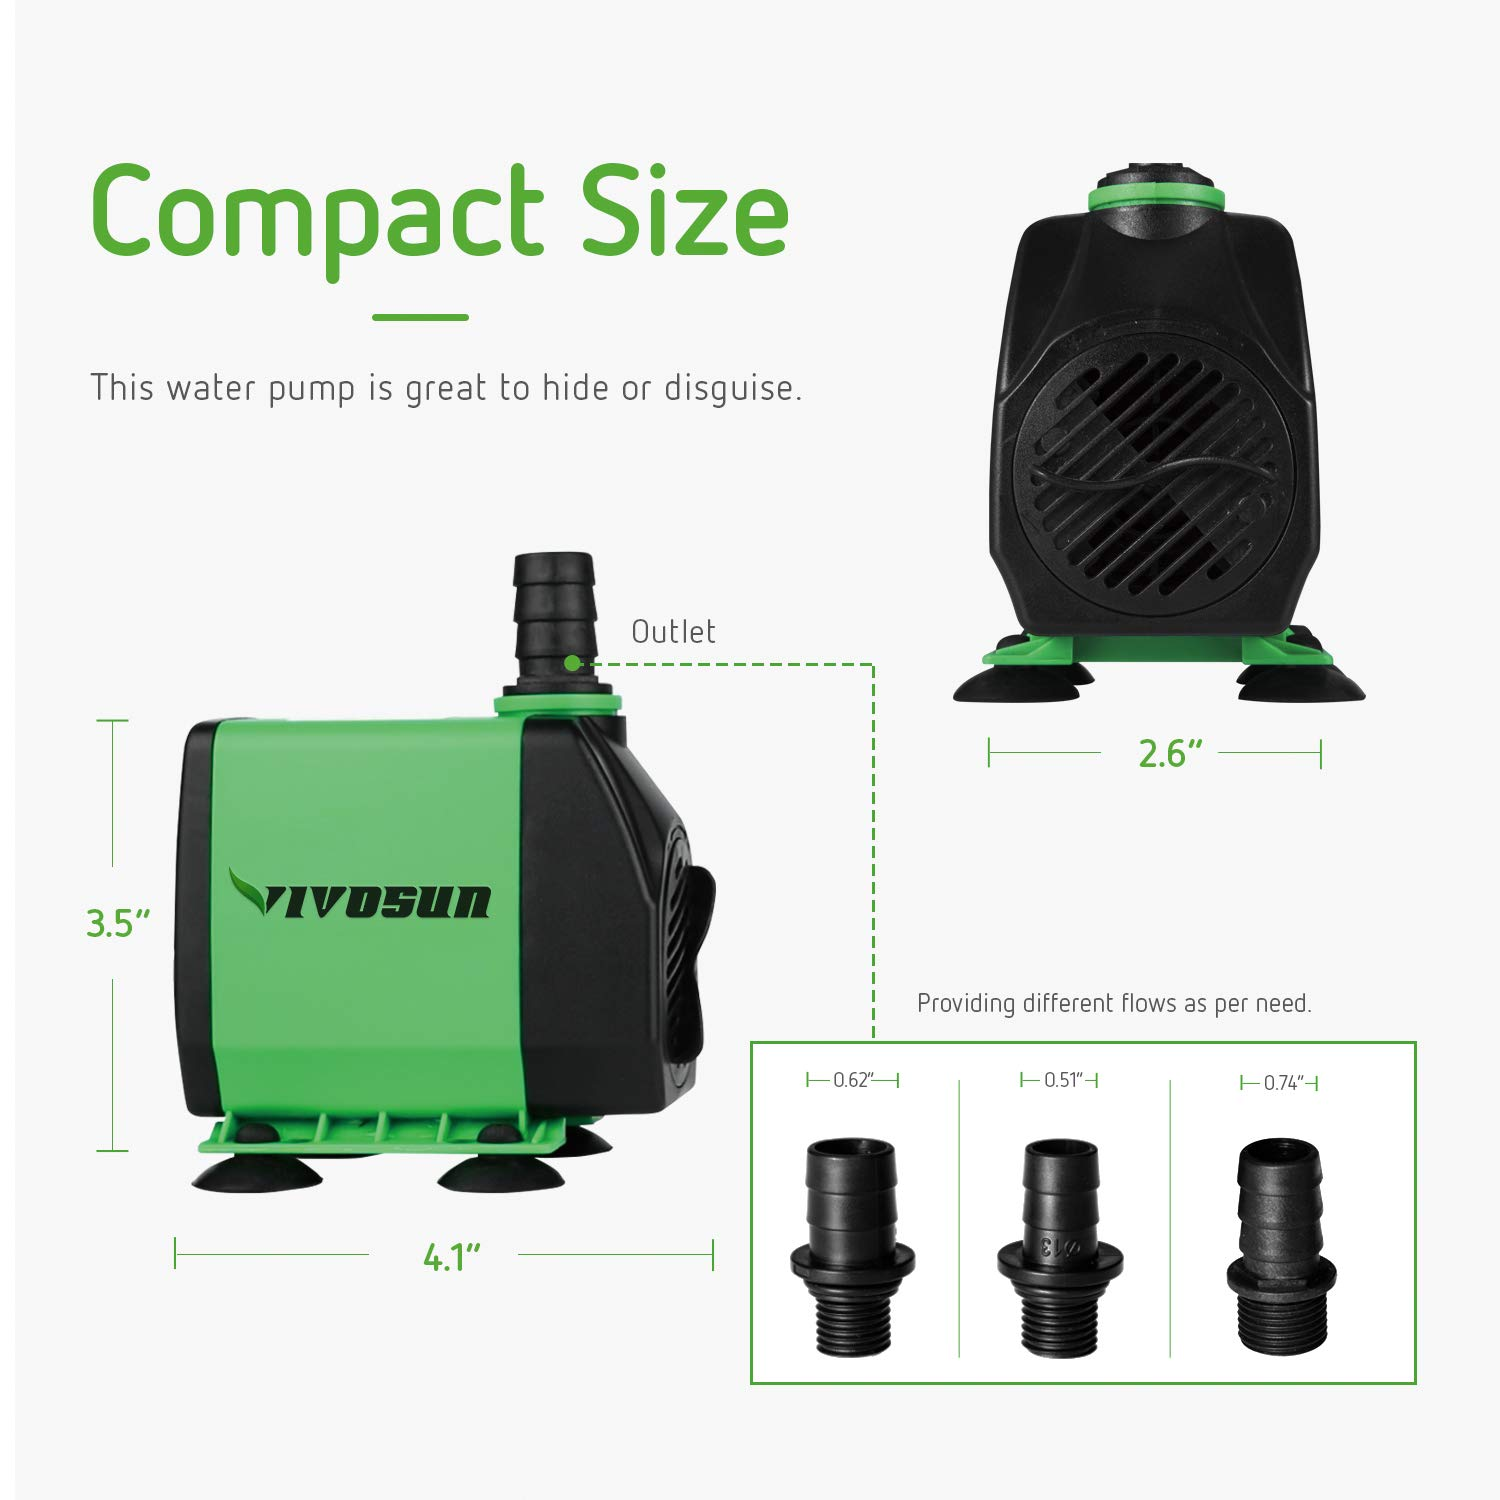 VIVOSUN 800GPH Submersible Pump(3000L/H, 24W), Ultra Quiet Water Pump with 10ft High Lift, Fountain Pump with 5ft Power Cord, 3 Nozzles for Fish Tank, Pond, Aquarium, Statuary, Hydroponics by VIVOSUN (Image #3)